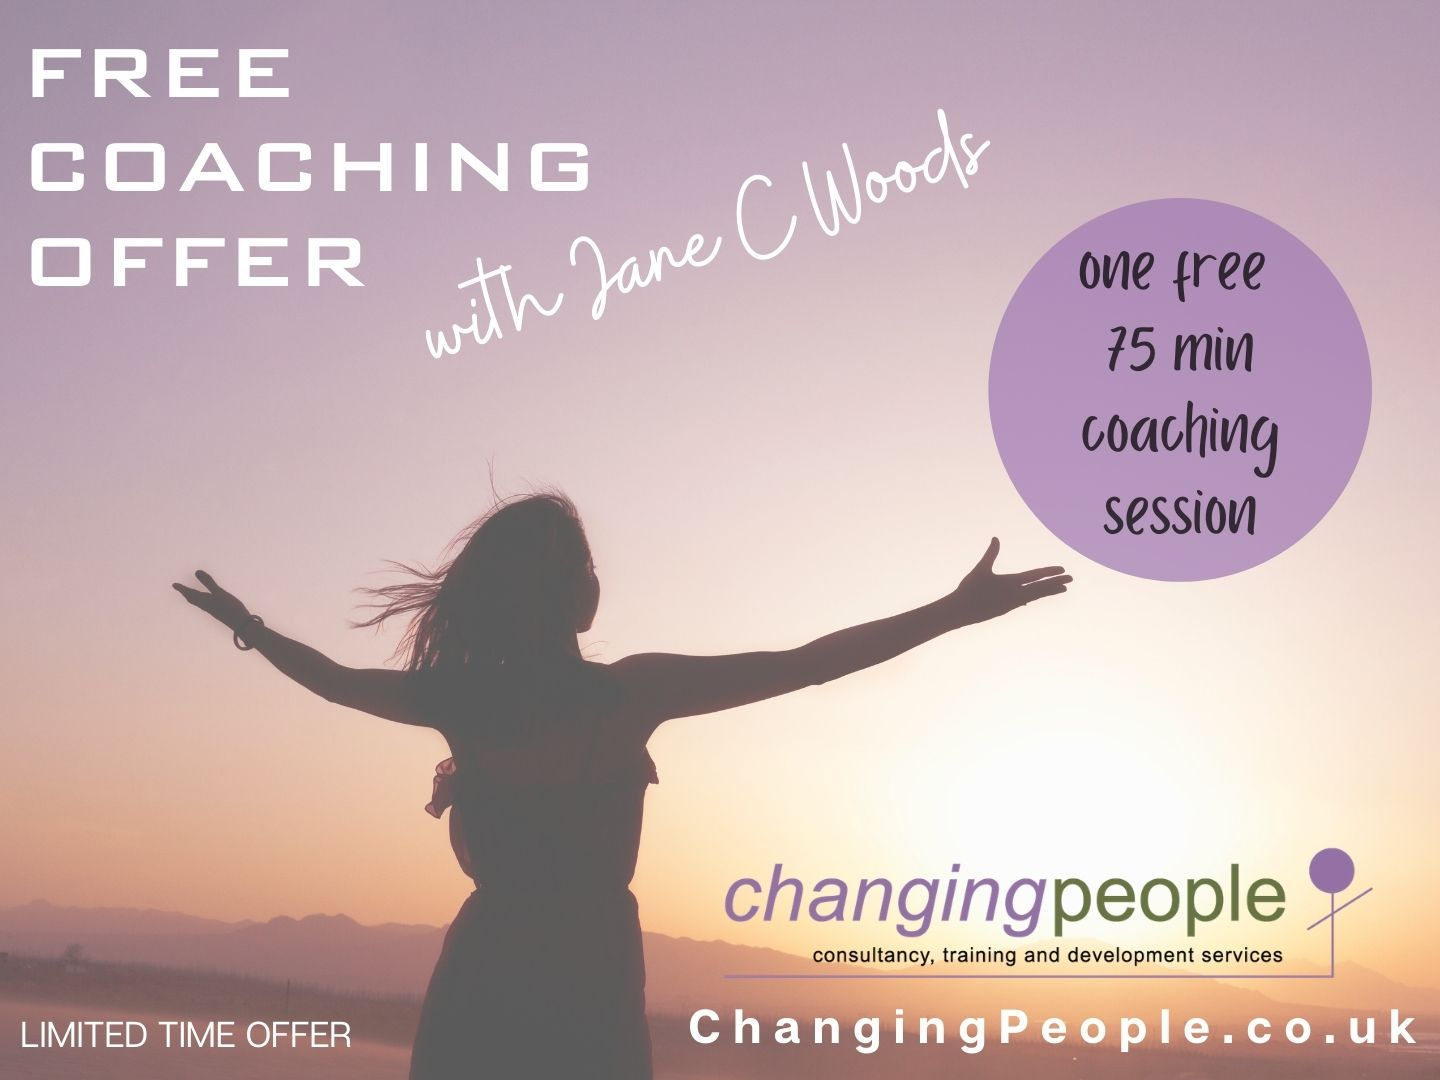 Message from Jane C Woods of Changing People